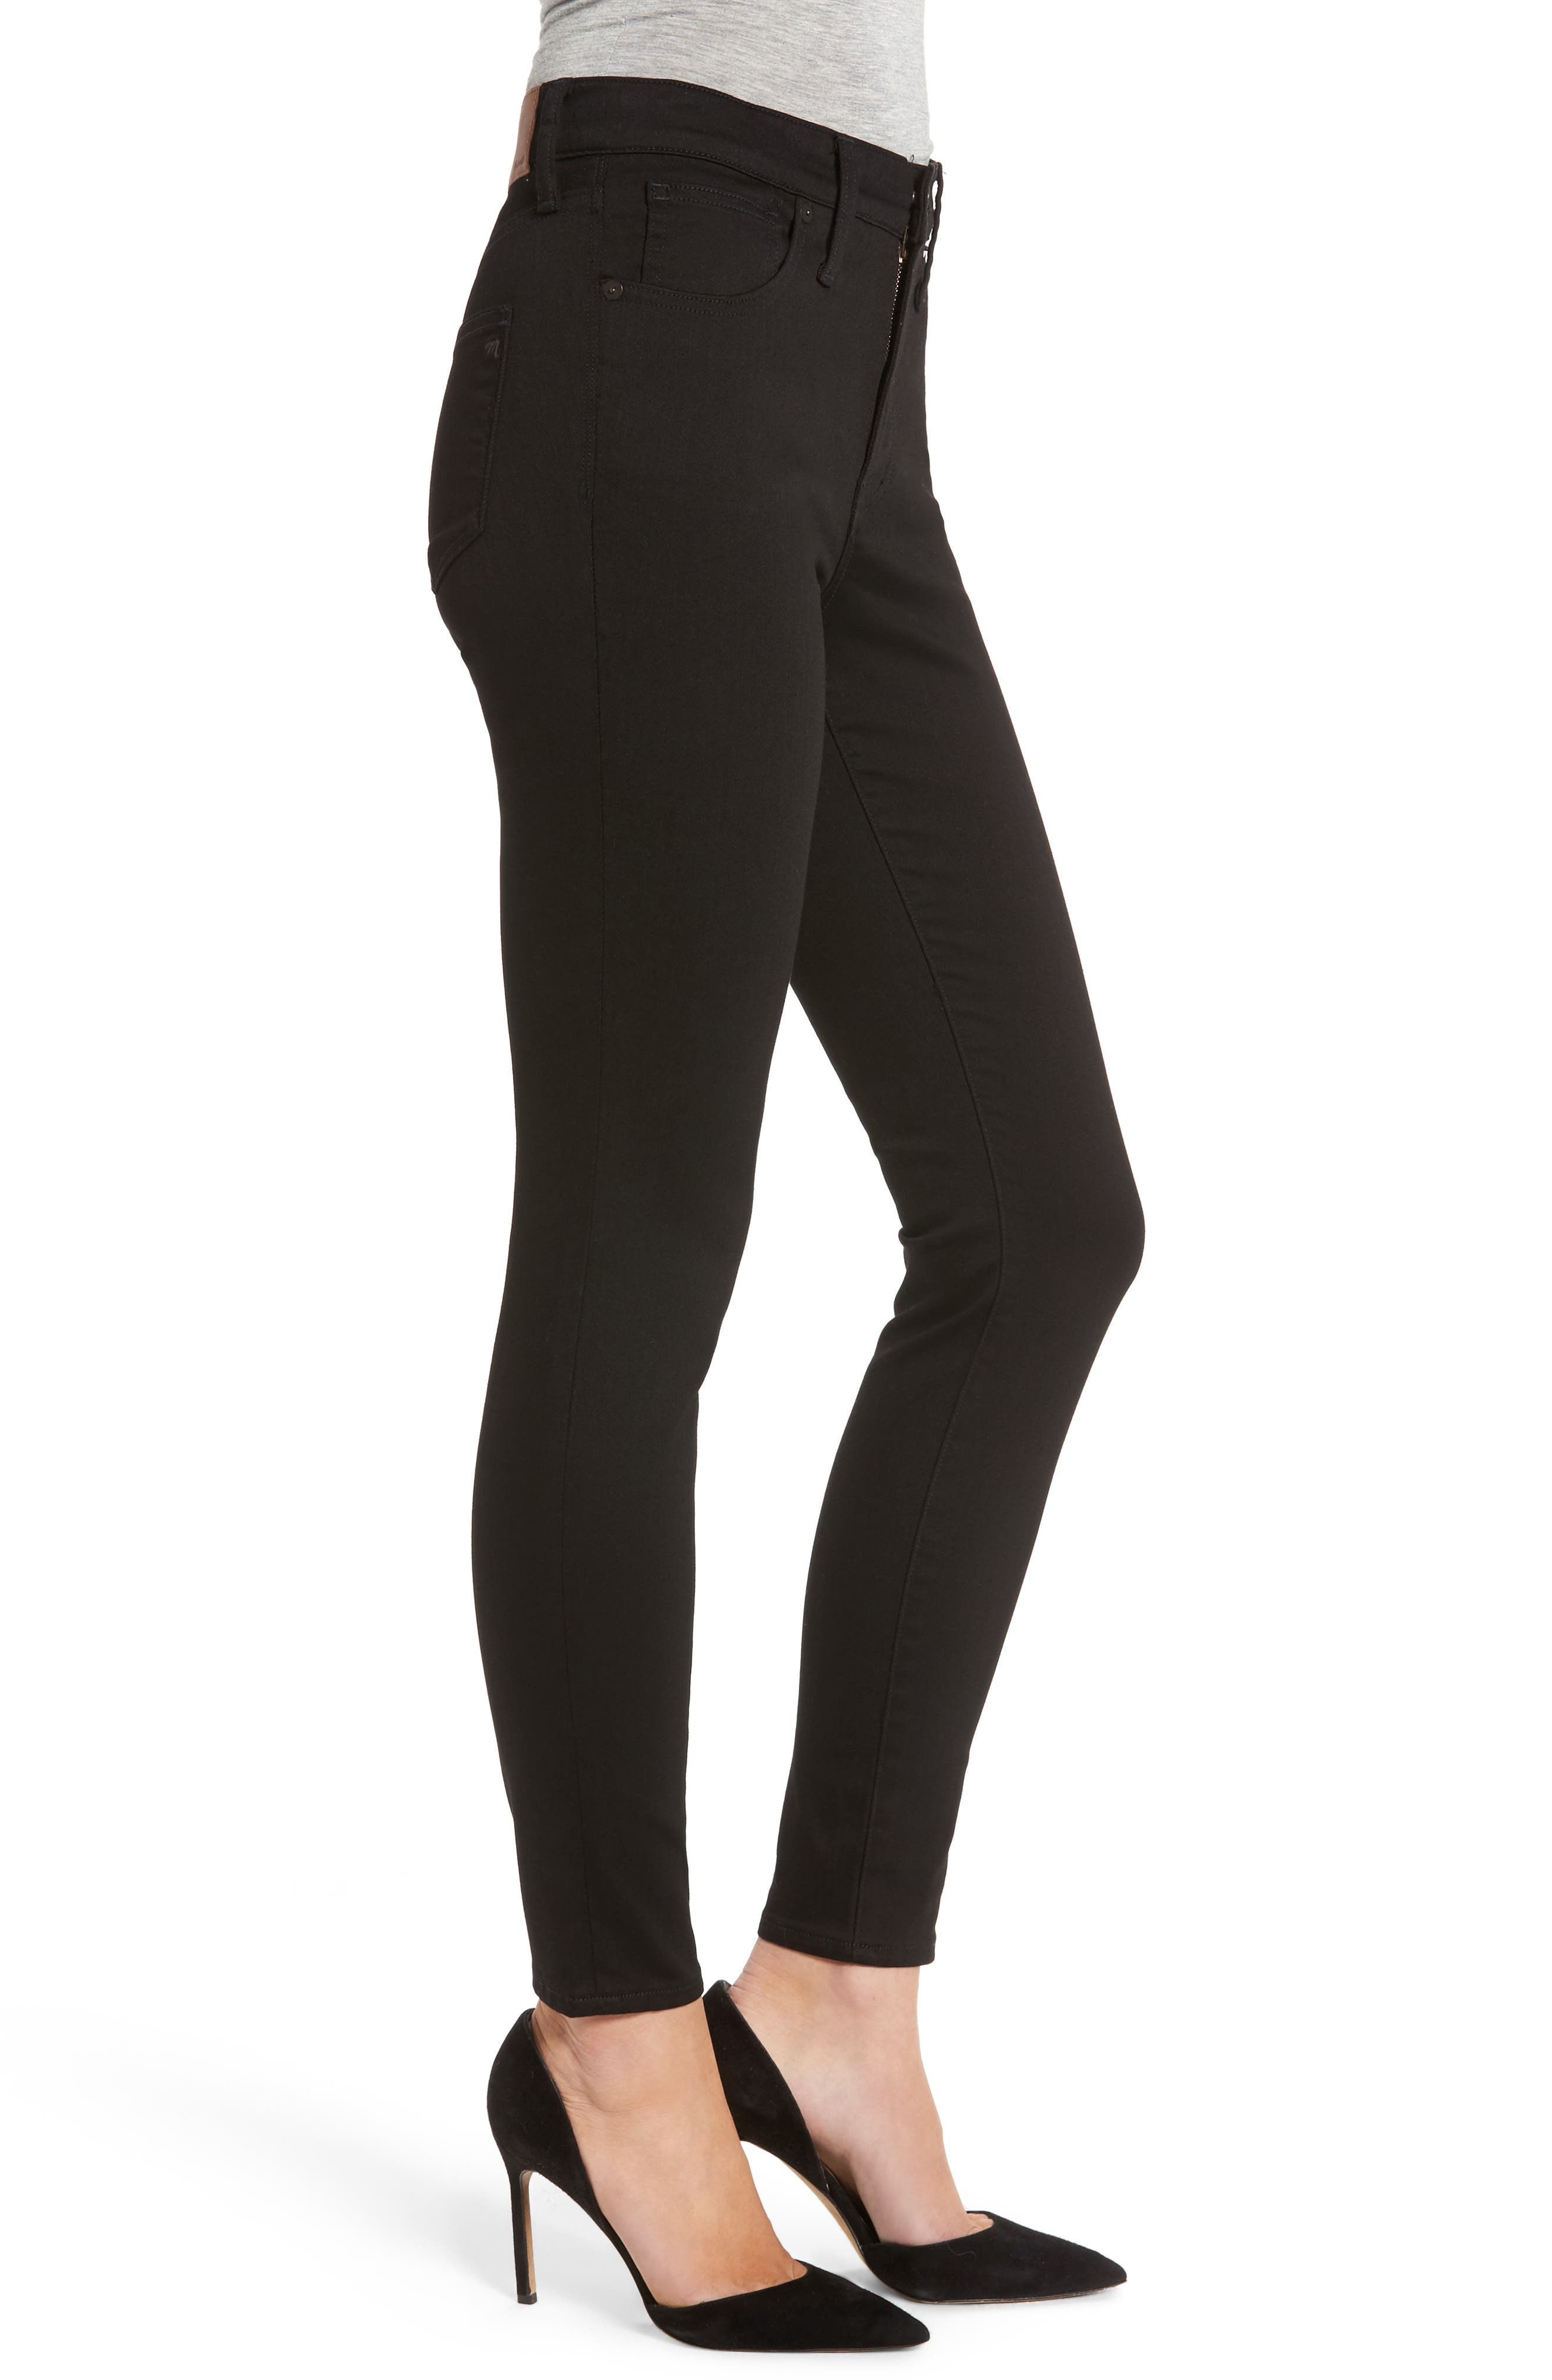 9-Inch High Waist Skinny Jeans,                             Alternate thumbnail 3, color,                             Black Frost